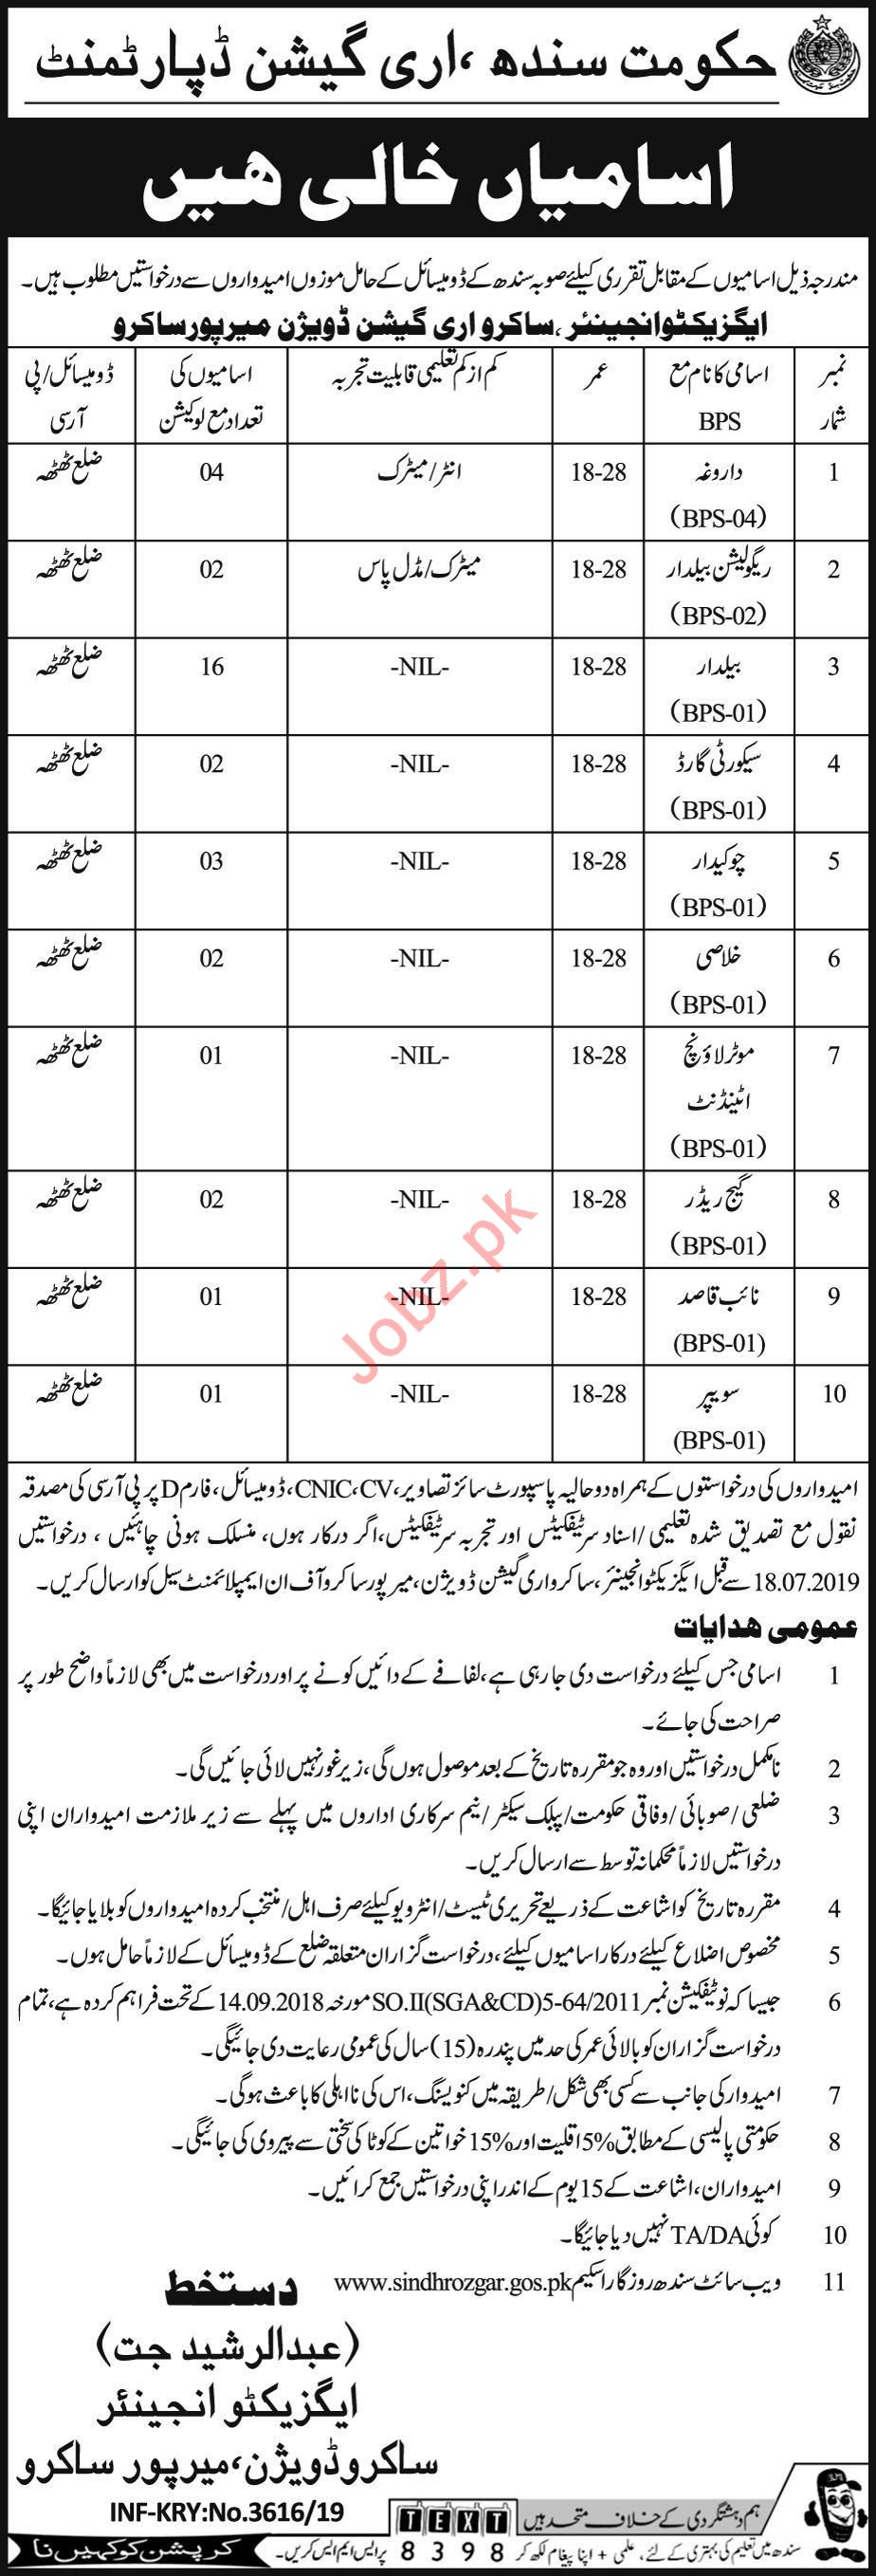 Irrigation Department Jobs 2019 For Mirpur Khas